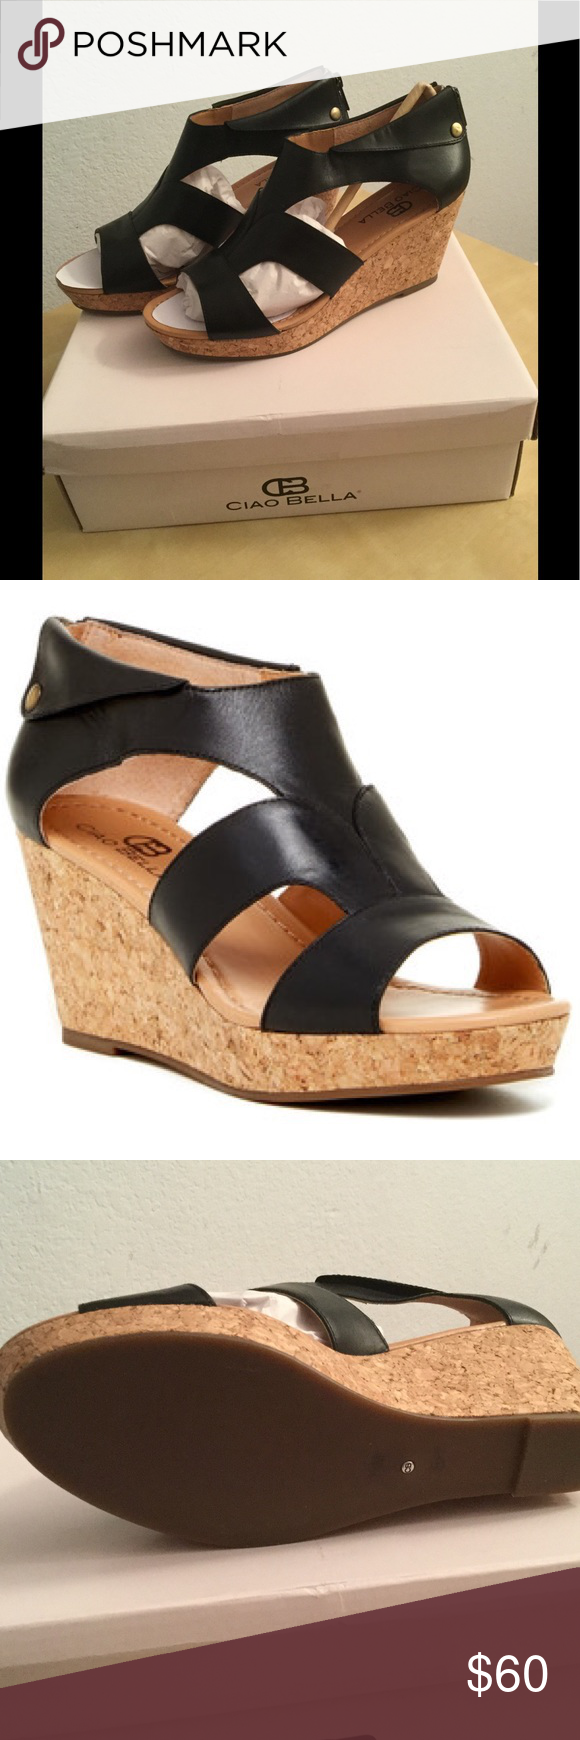 37feb5f29 Ciao Bella Lucy Cork Wedge Sandals These are brand new